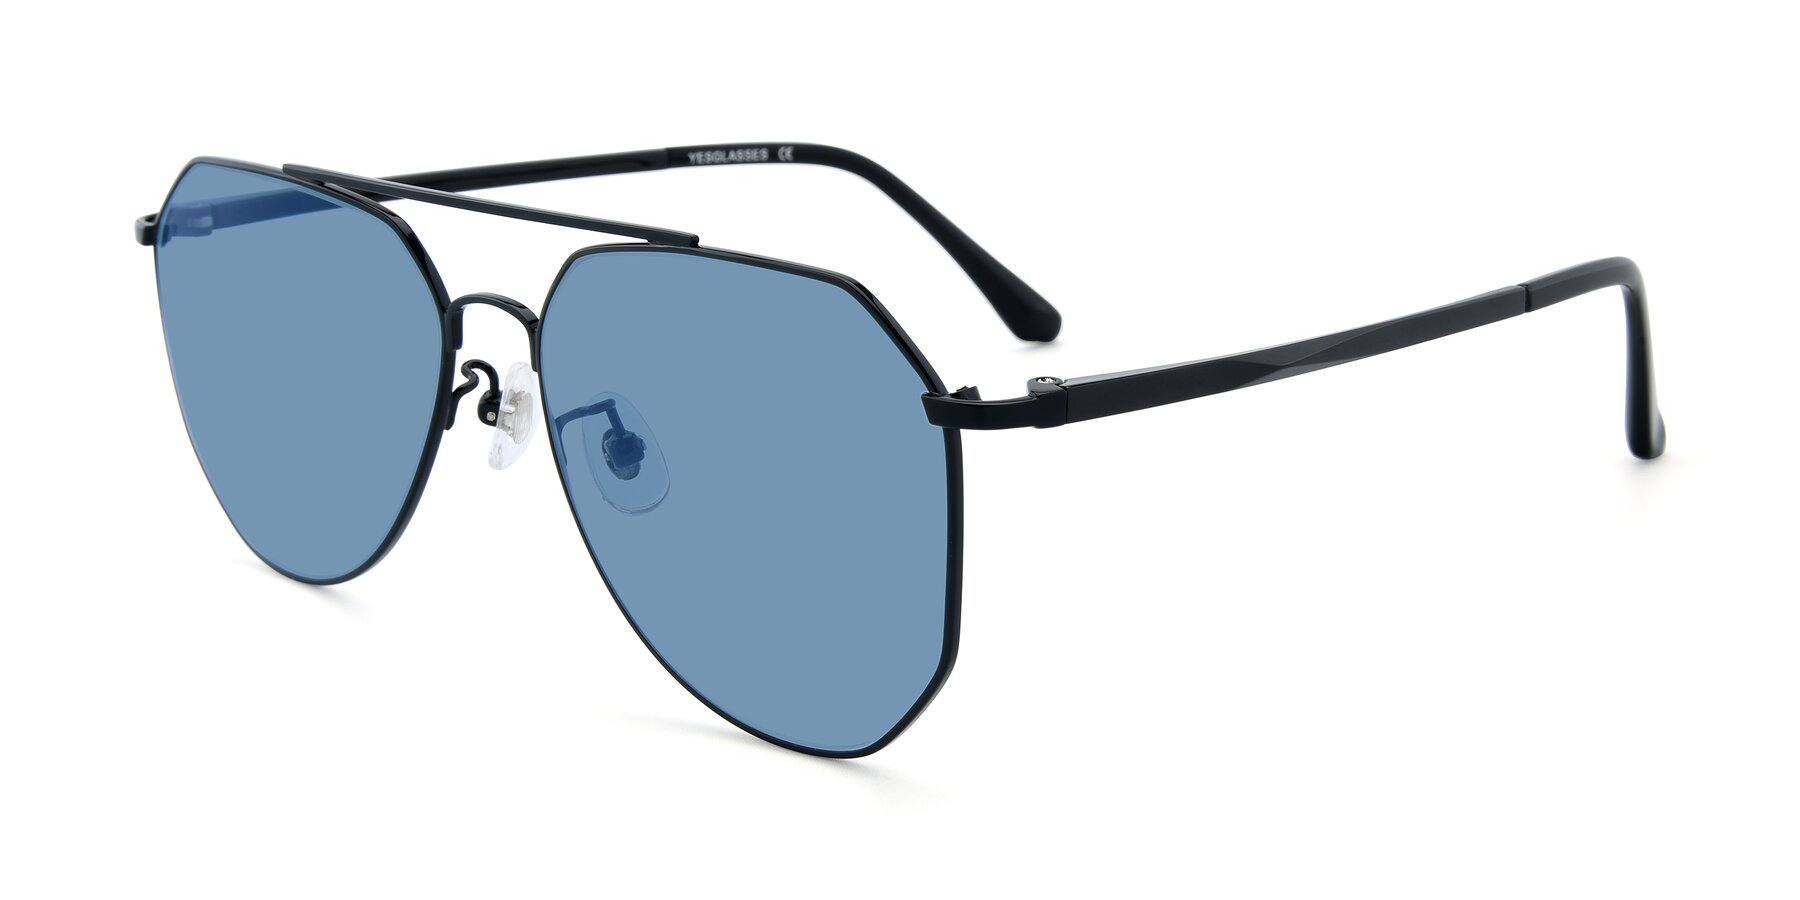 Angle of XC-8040 in Black with Medium Blue Tinted Lenses